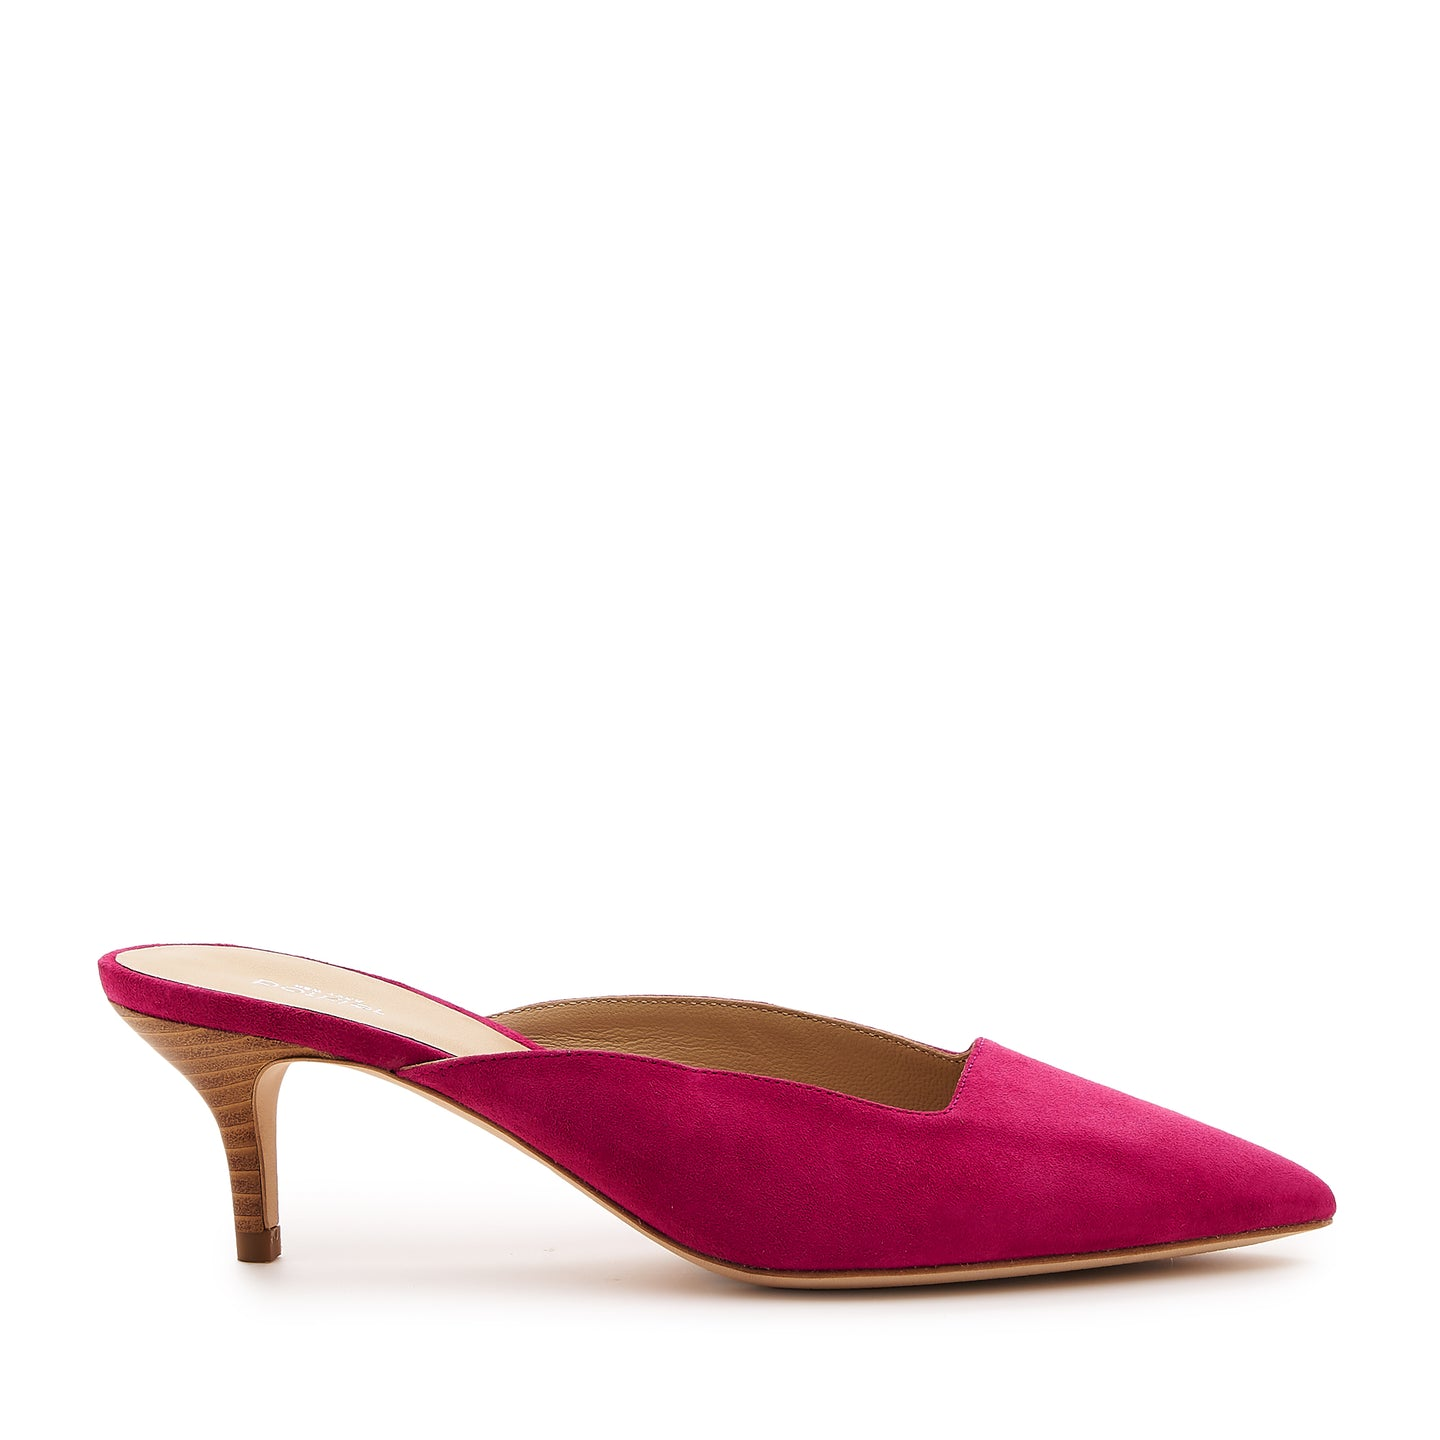 botkier perry kitten heel pointed toe mule in azalea pink